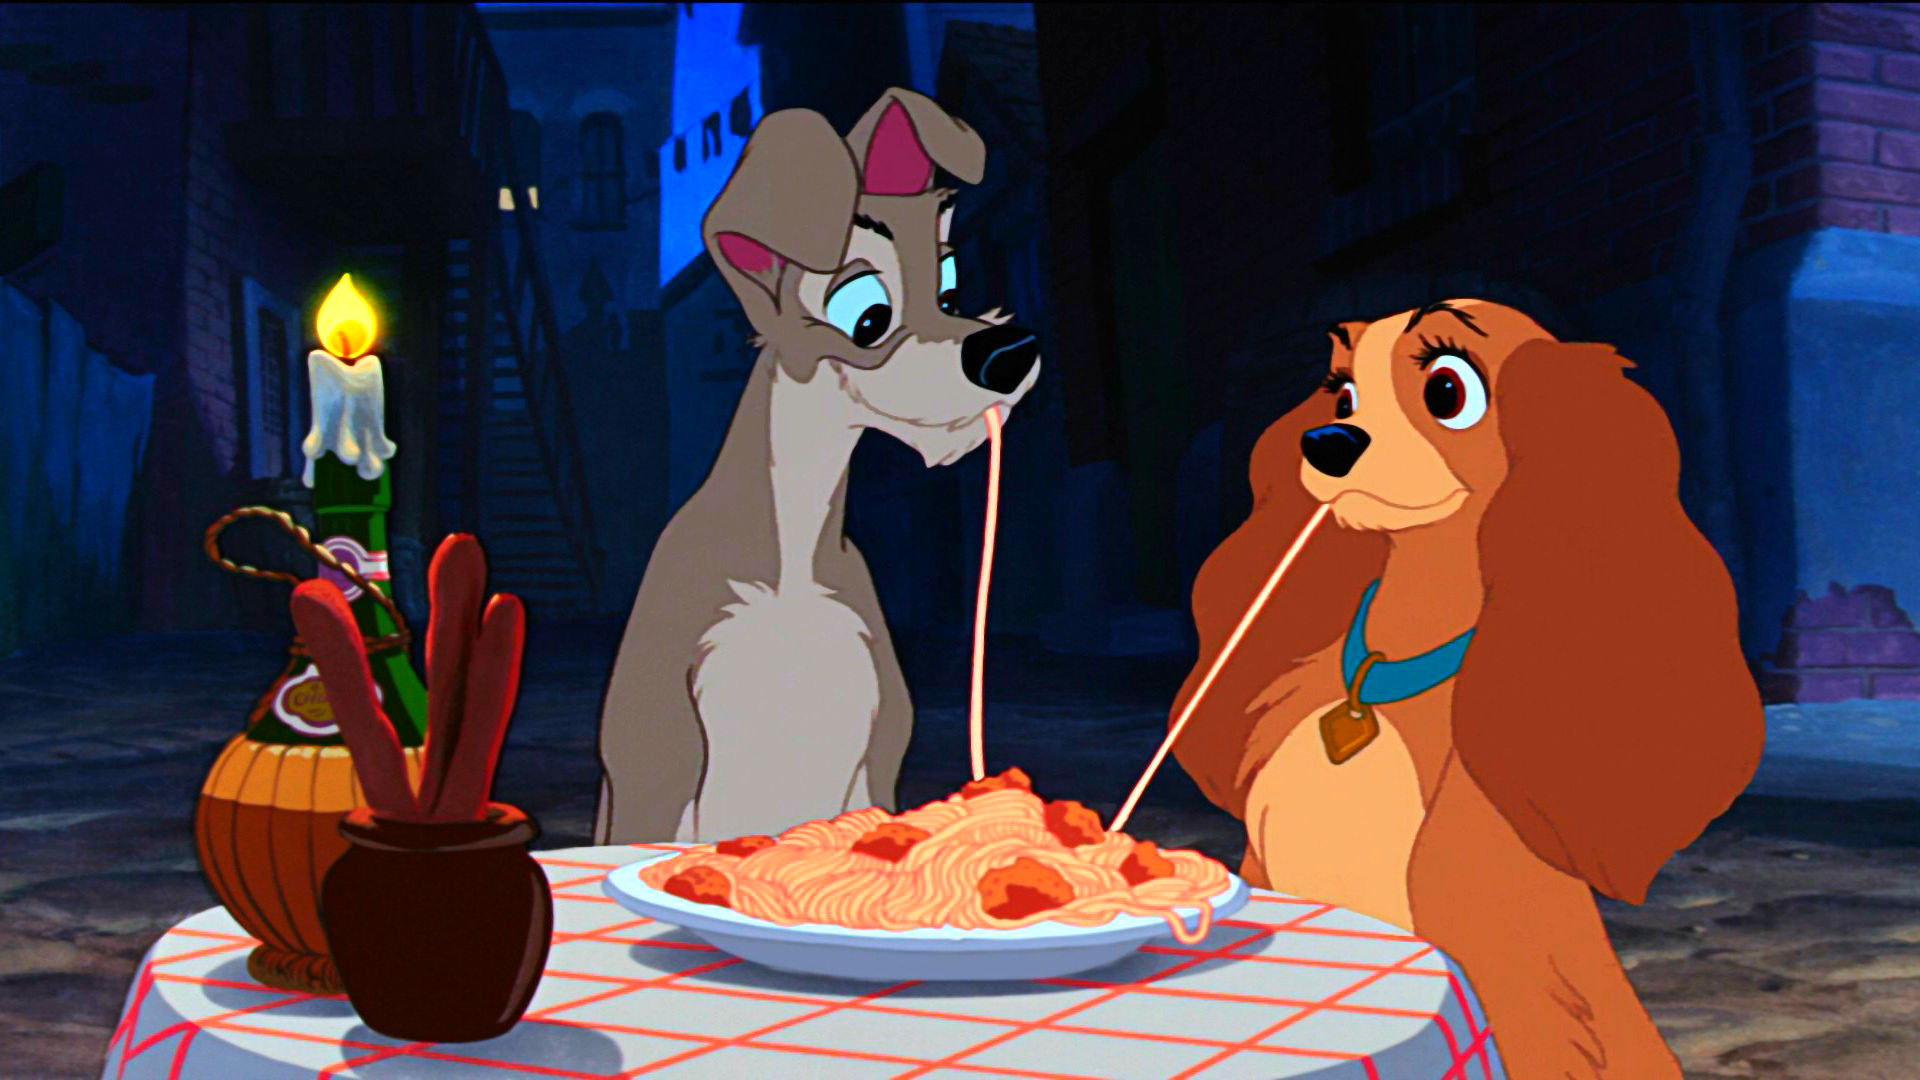 Still shot from the movie: Lady and the Tramp.